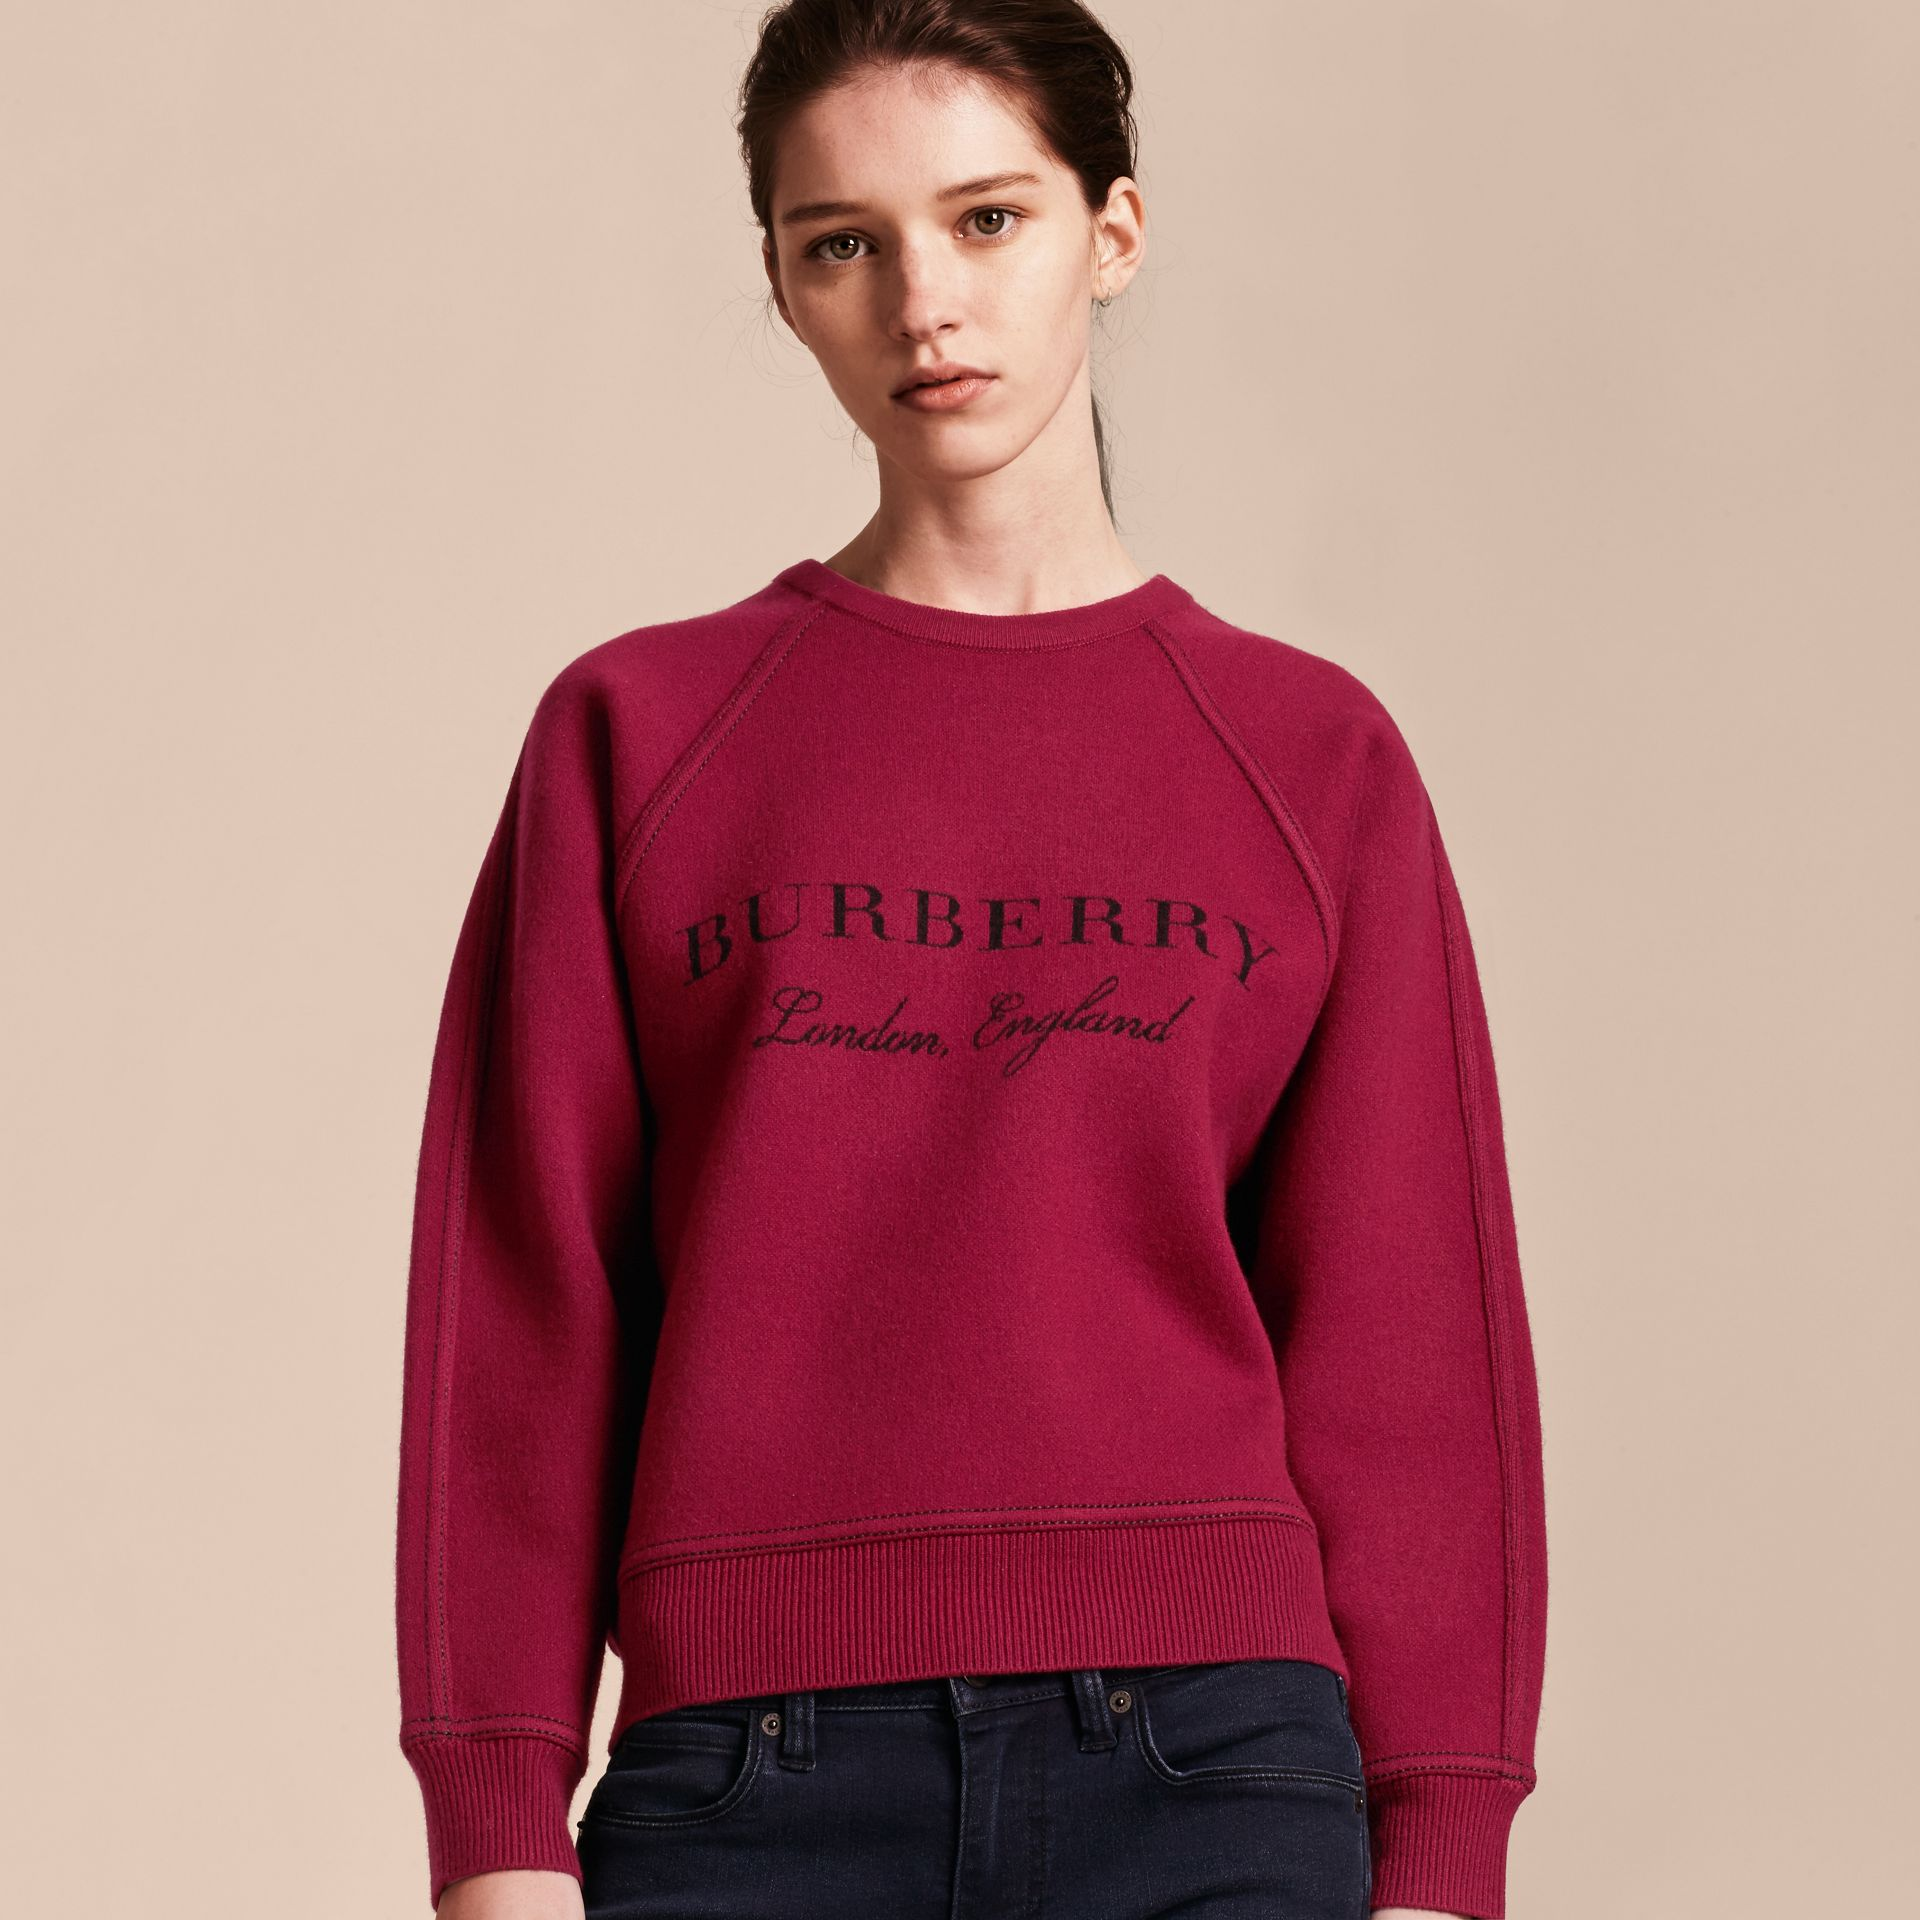 Topstitch Detail Wool Cashmere Blend Sweater in Burgundy - Women | Burberry Singapore - gallery image 6